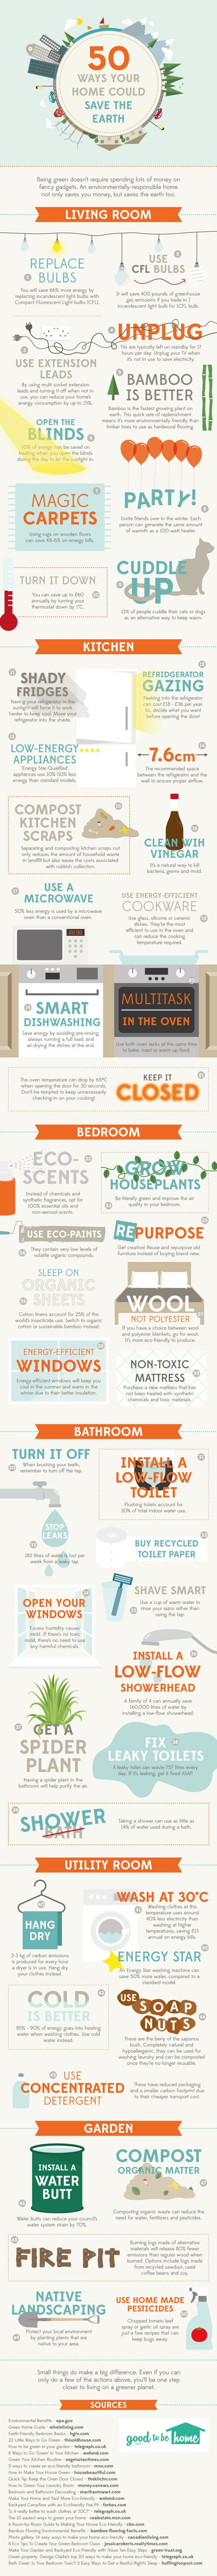 50 ways your home can save the earth - may delude us into thinking this is an adequate reponse.